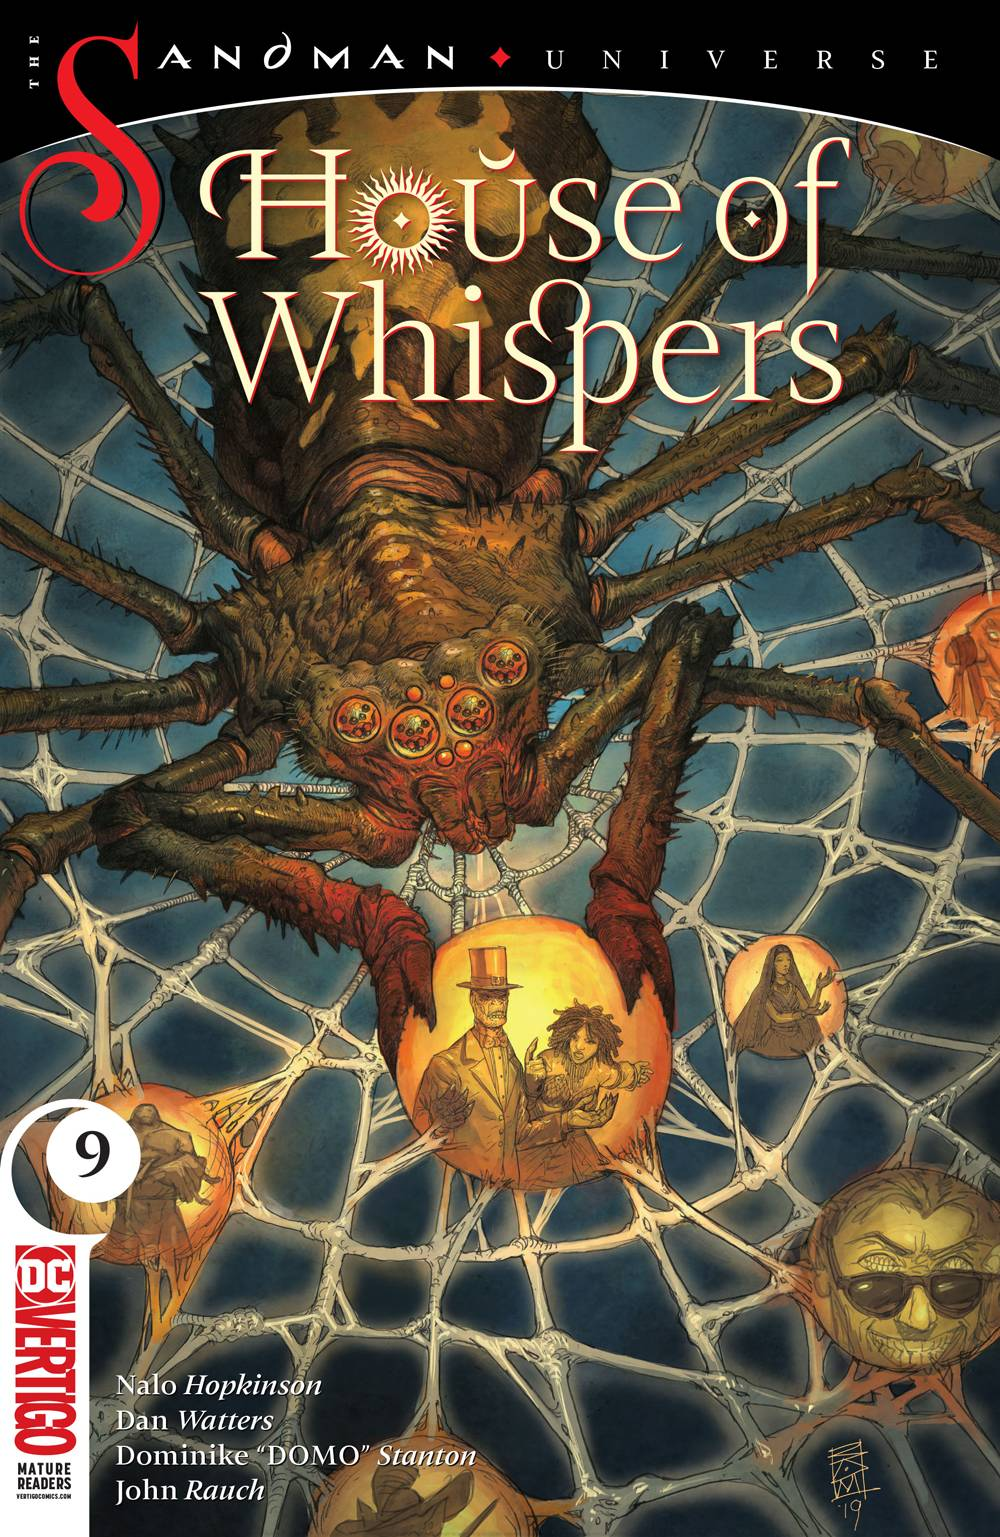 HOUSE OF WHISPERS 9.jpg